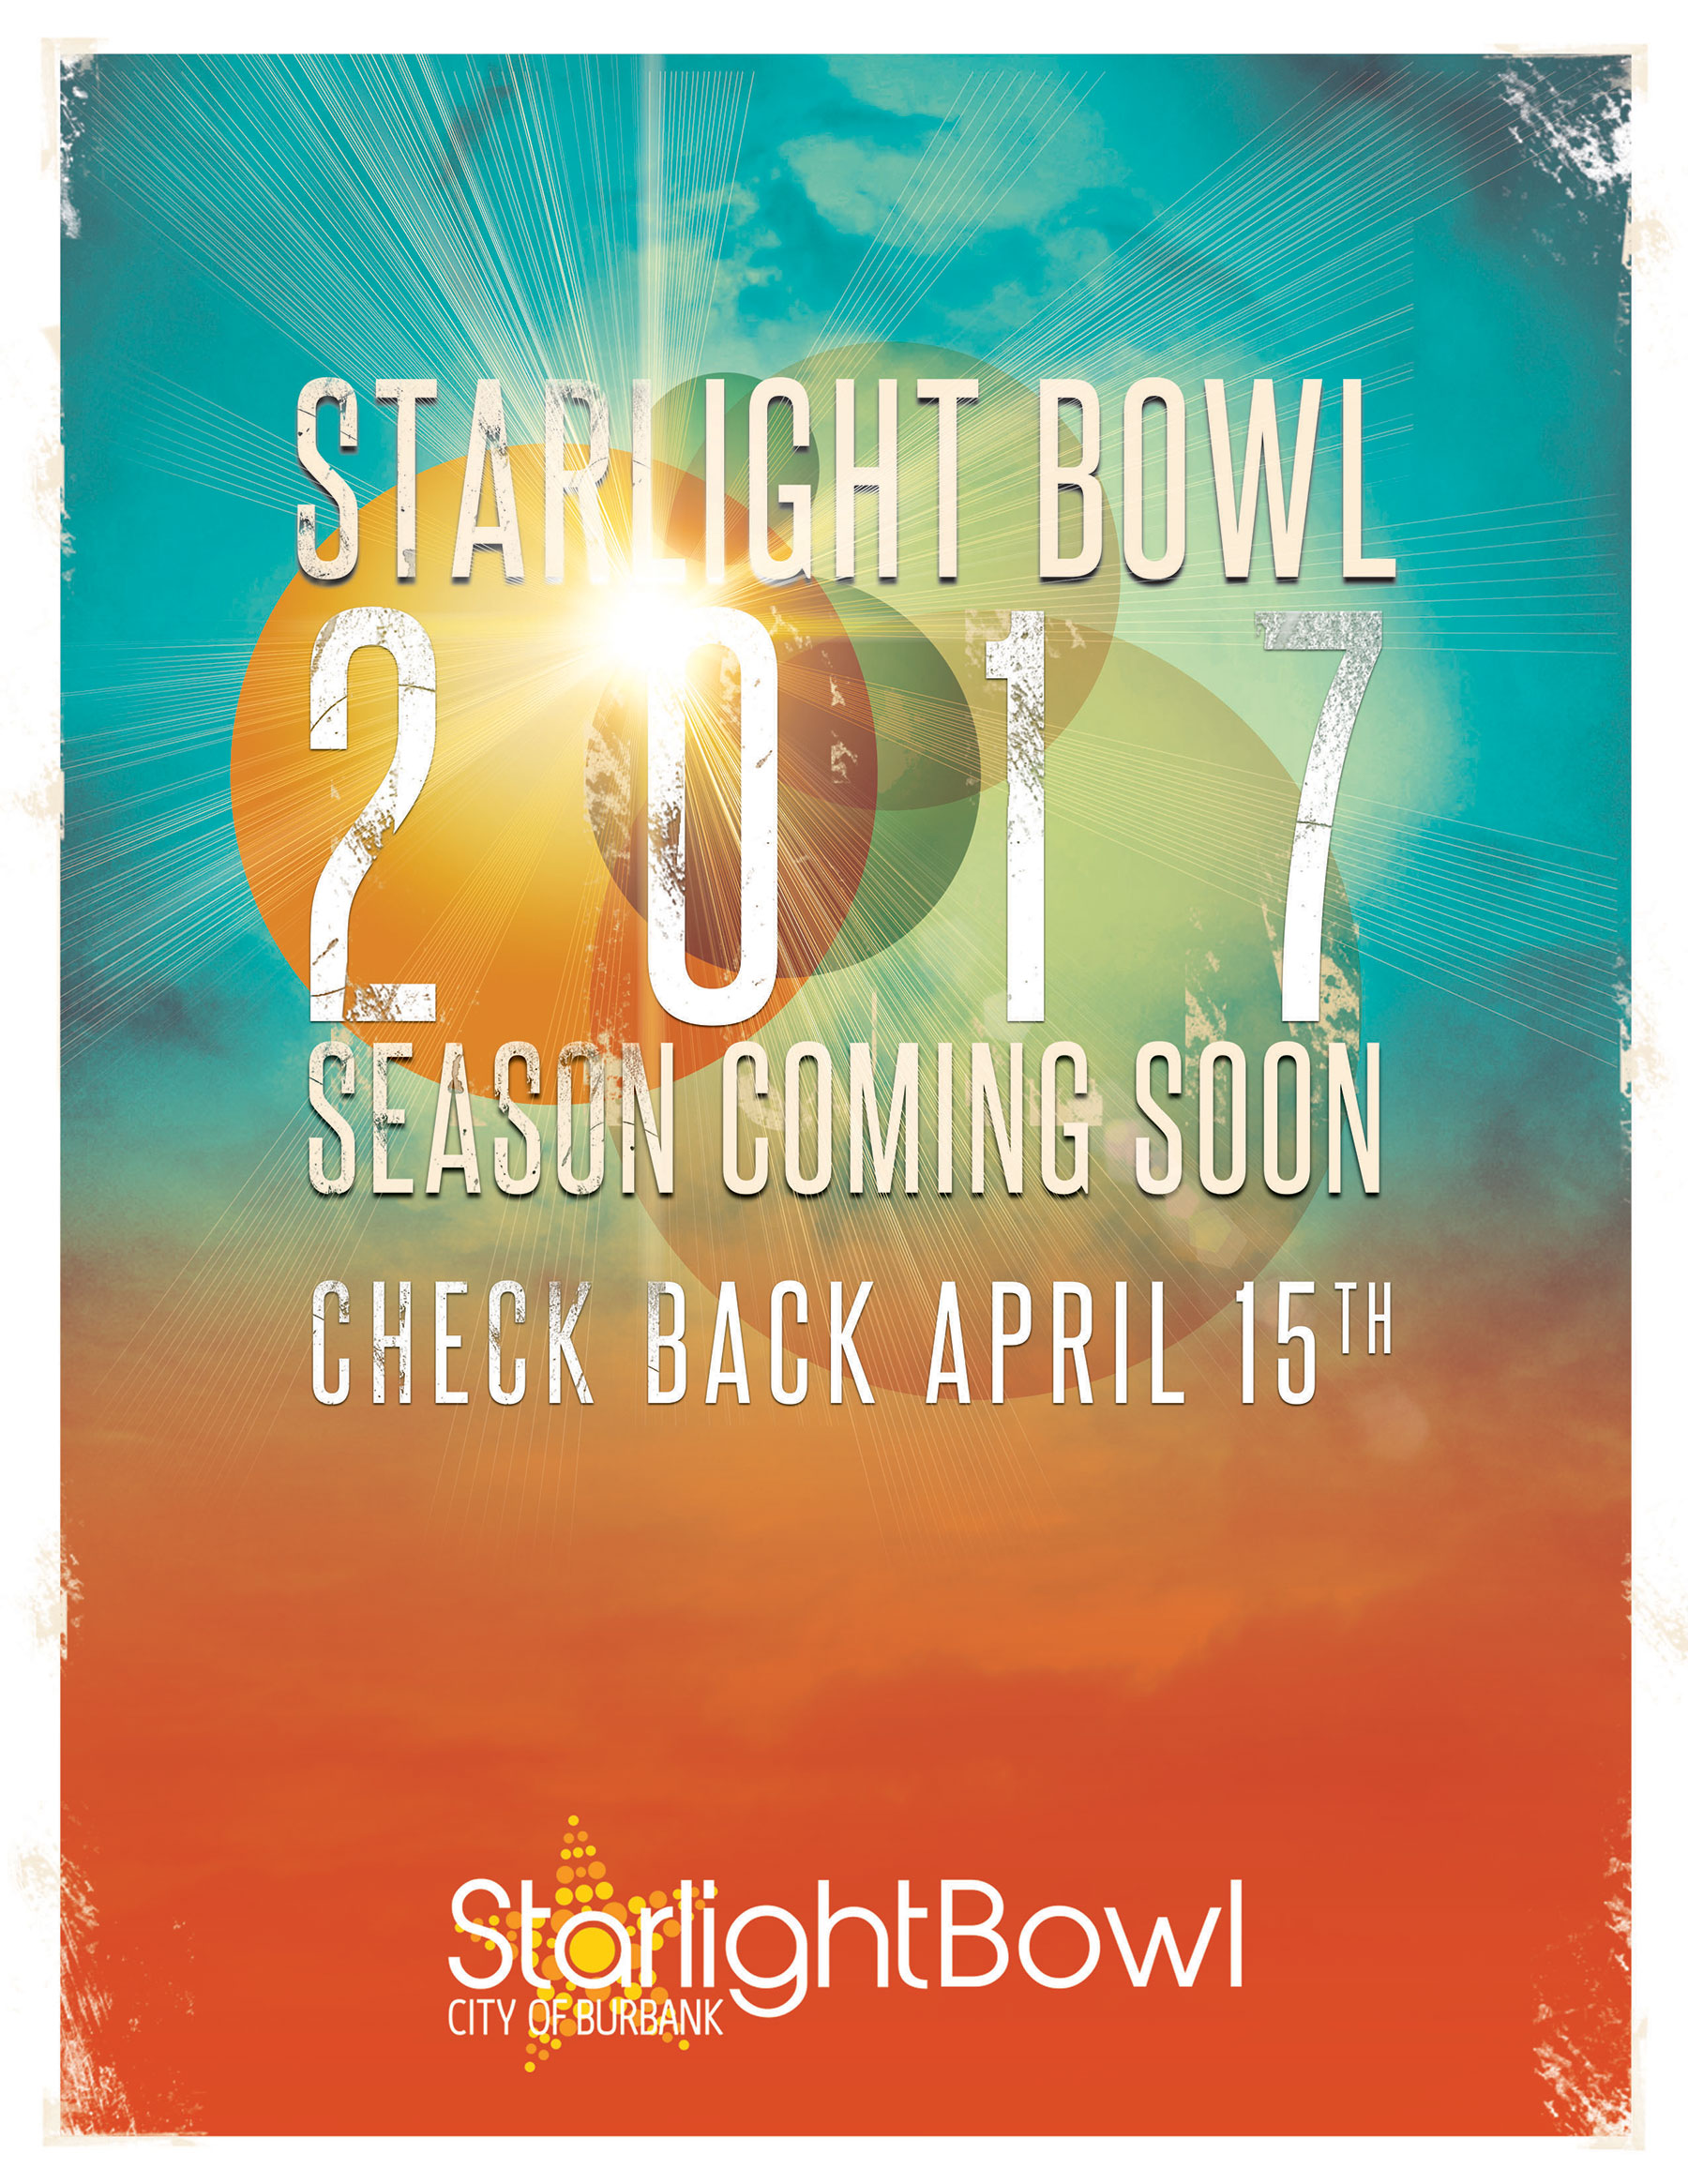 2017 starlight Bowl Season, Coming Soon. Please check back April 15th